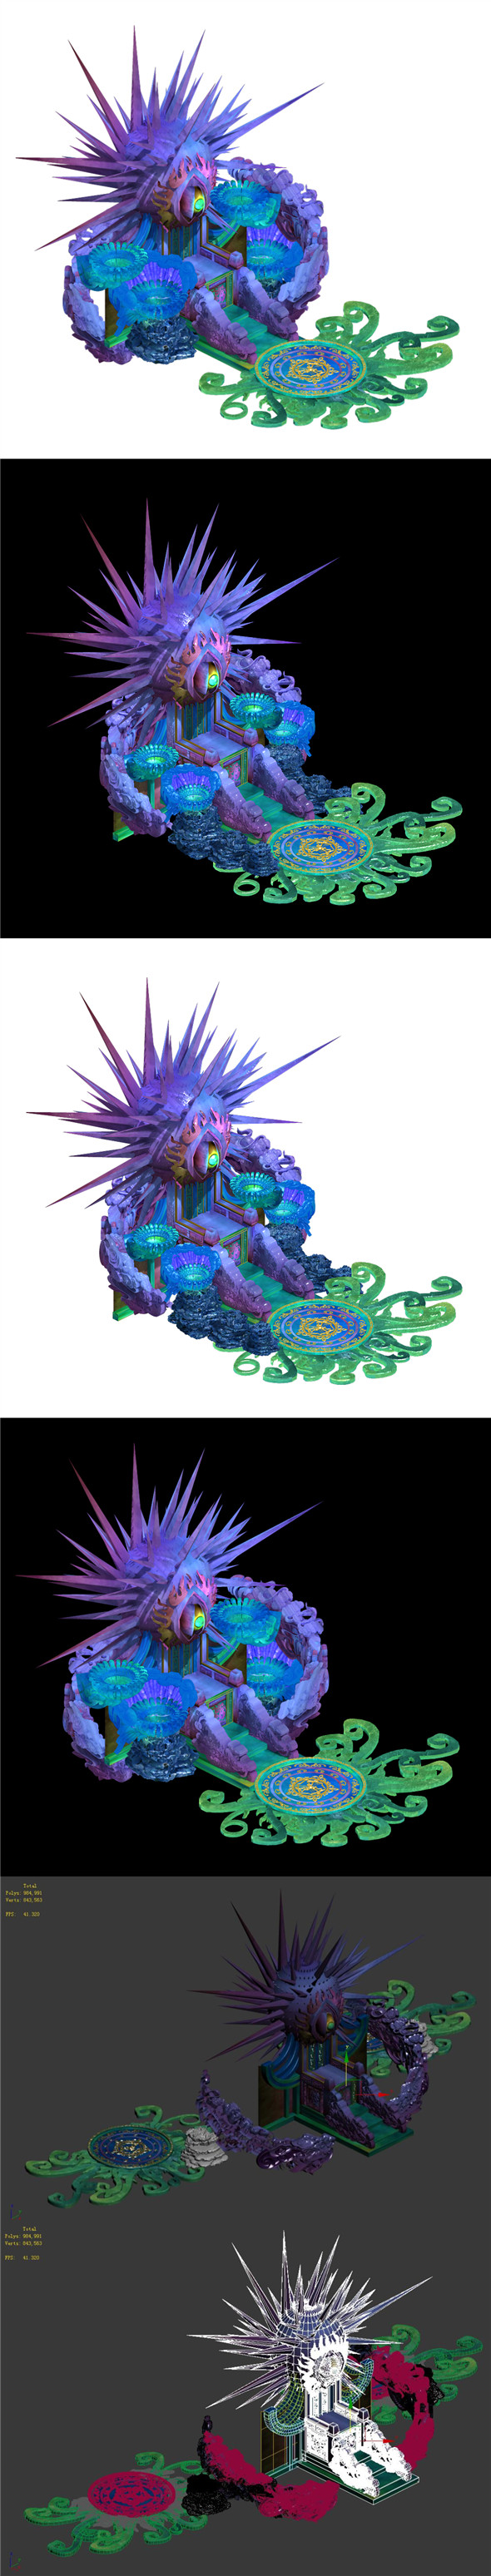 Seabed - Dragon Emperor throne - 3DOcean Item for Sale